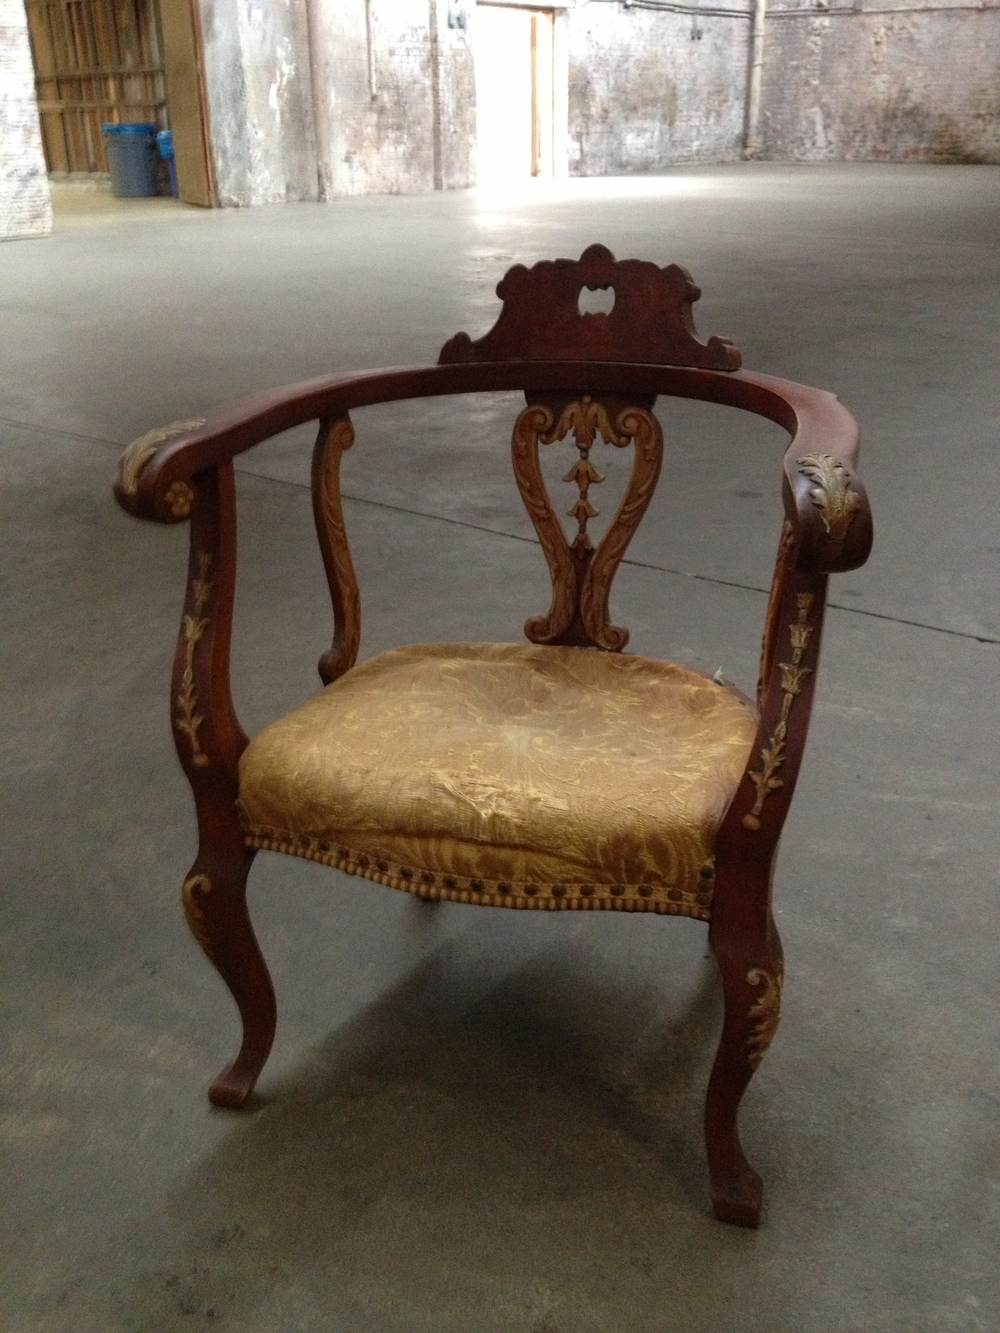 Antique Yellow Seat Throne $75